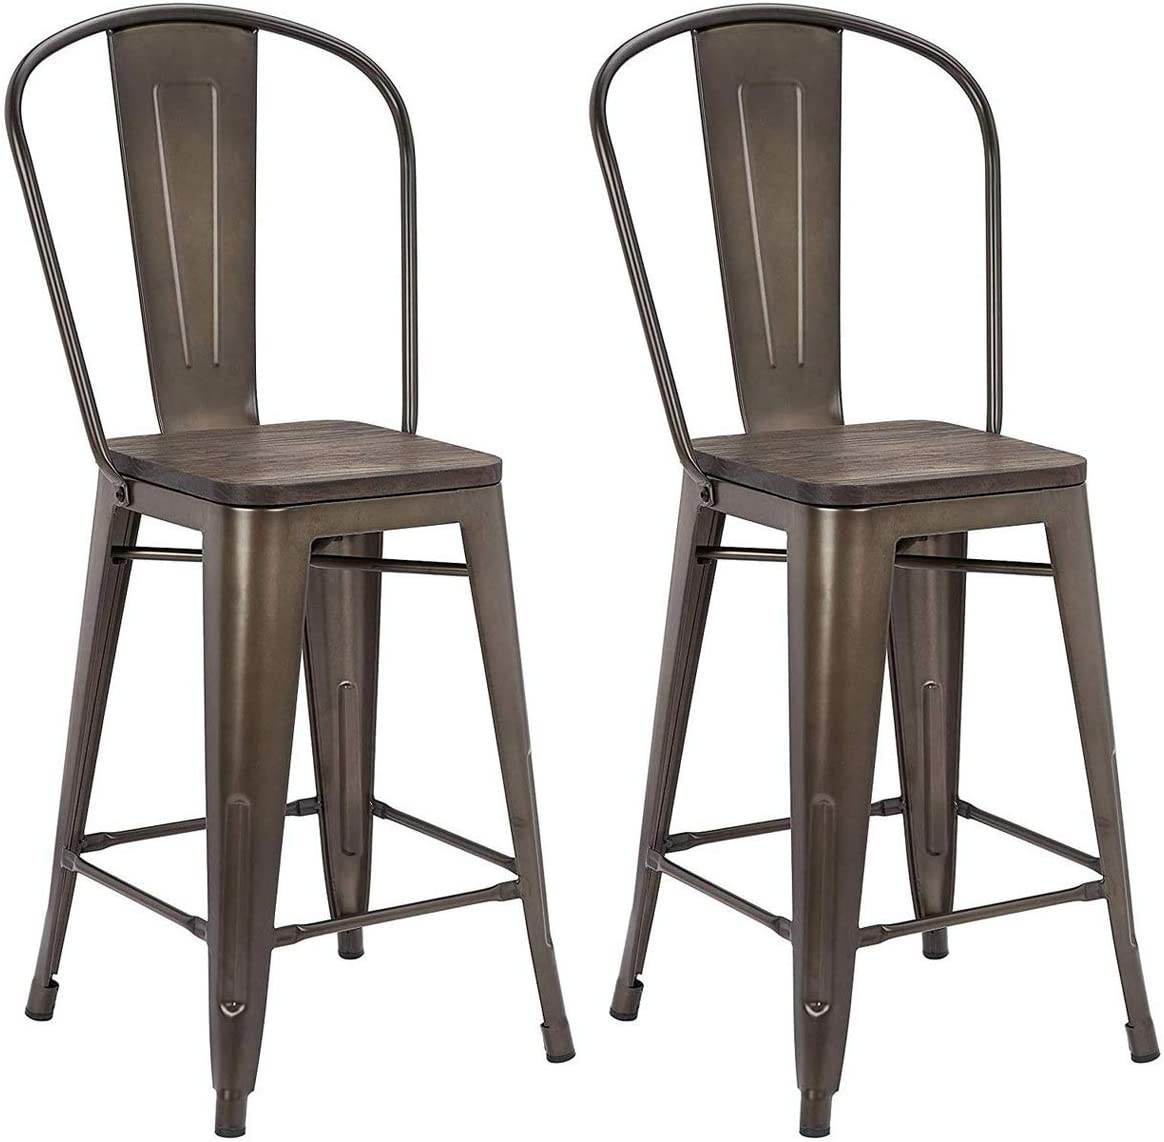 MELLCOM 24 Inch Bar Stools with Bucket Back,Indoor Outdoor Counter Height Stool,Metal Bar Chairs-Set of 2